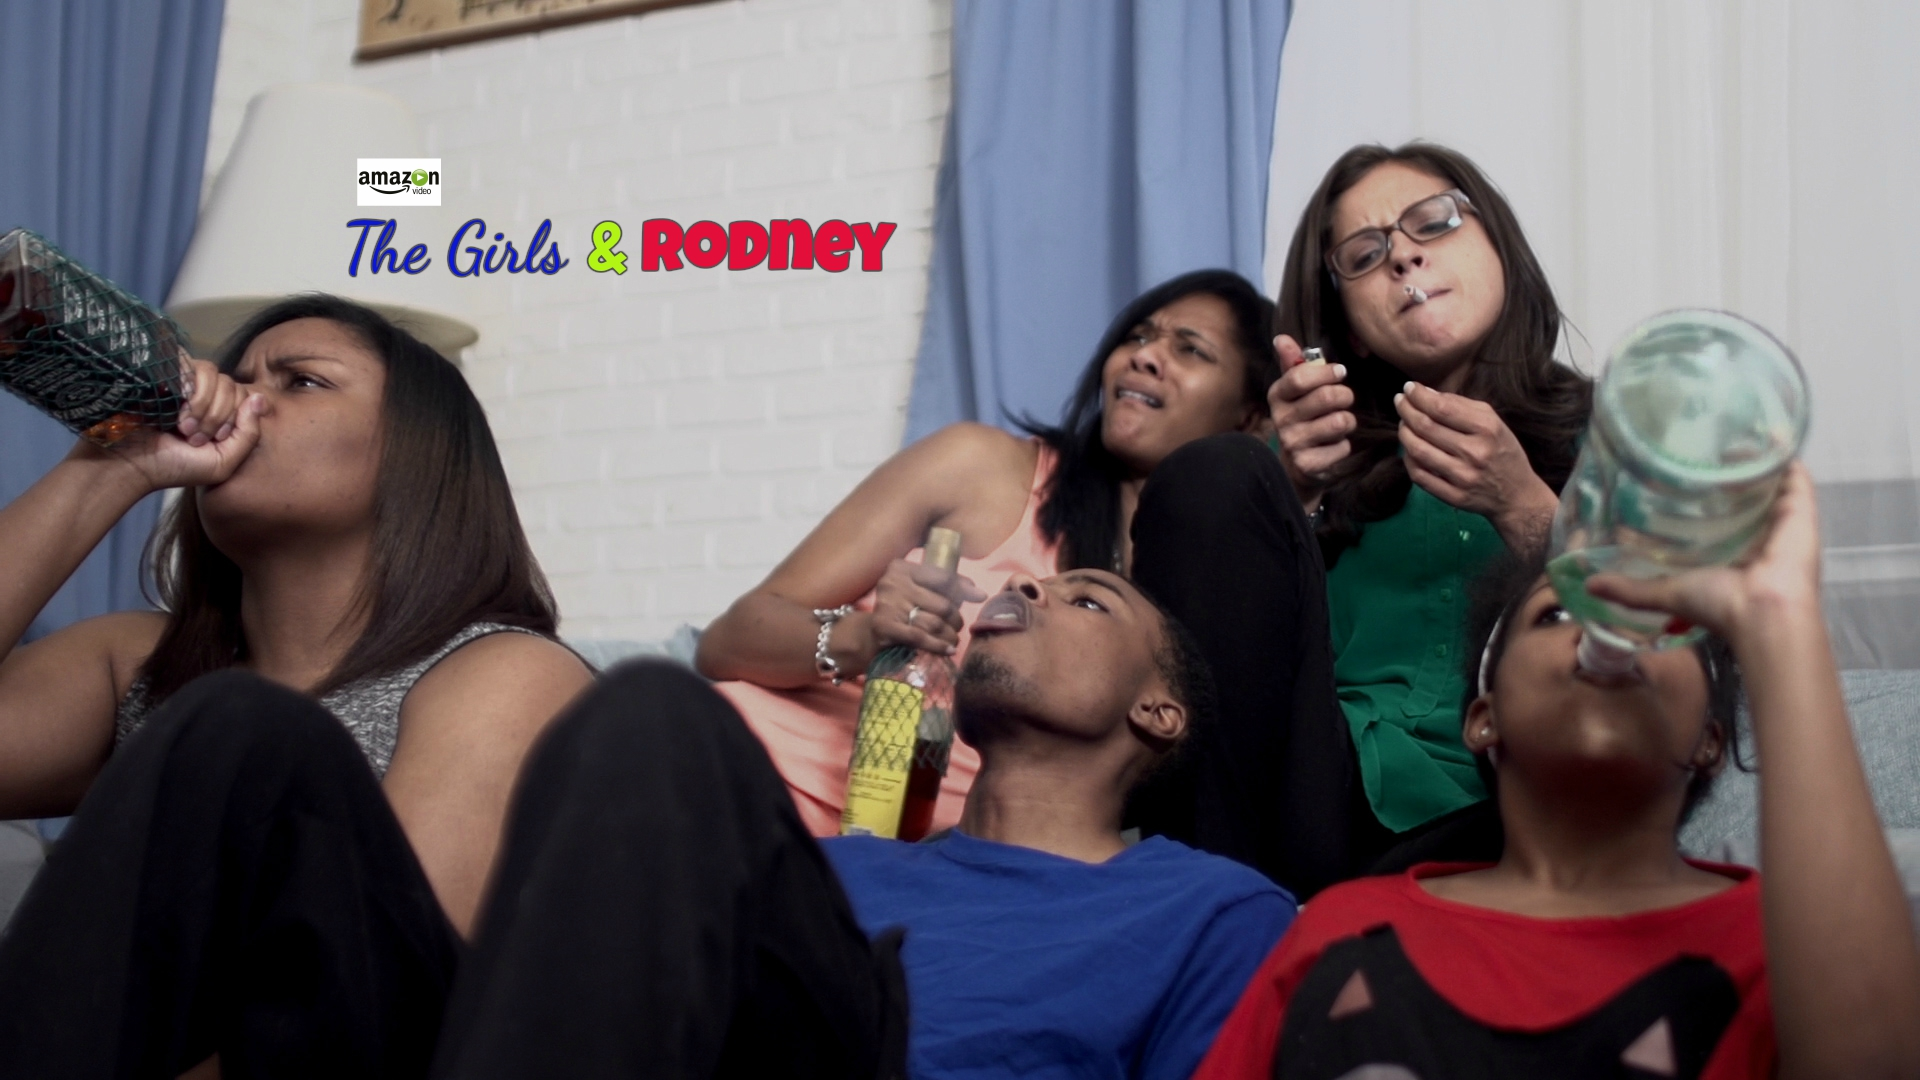 LOOK WHO'S NEXT: The Girls & Rodney